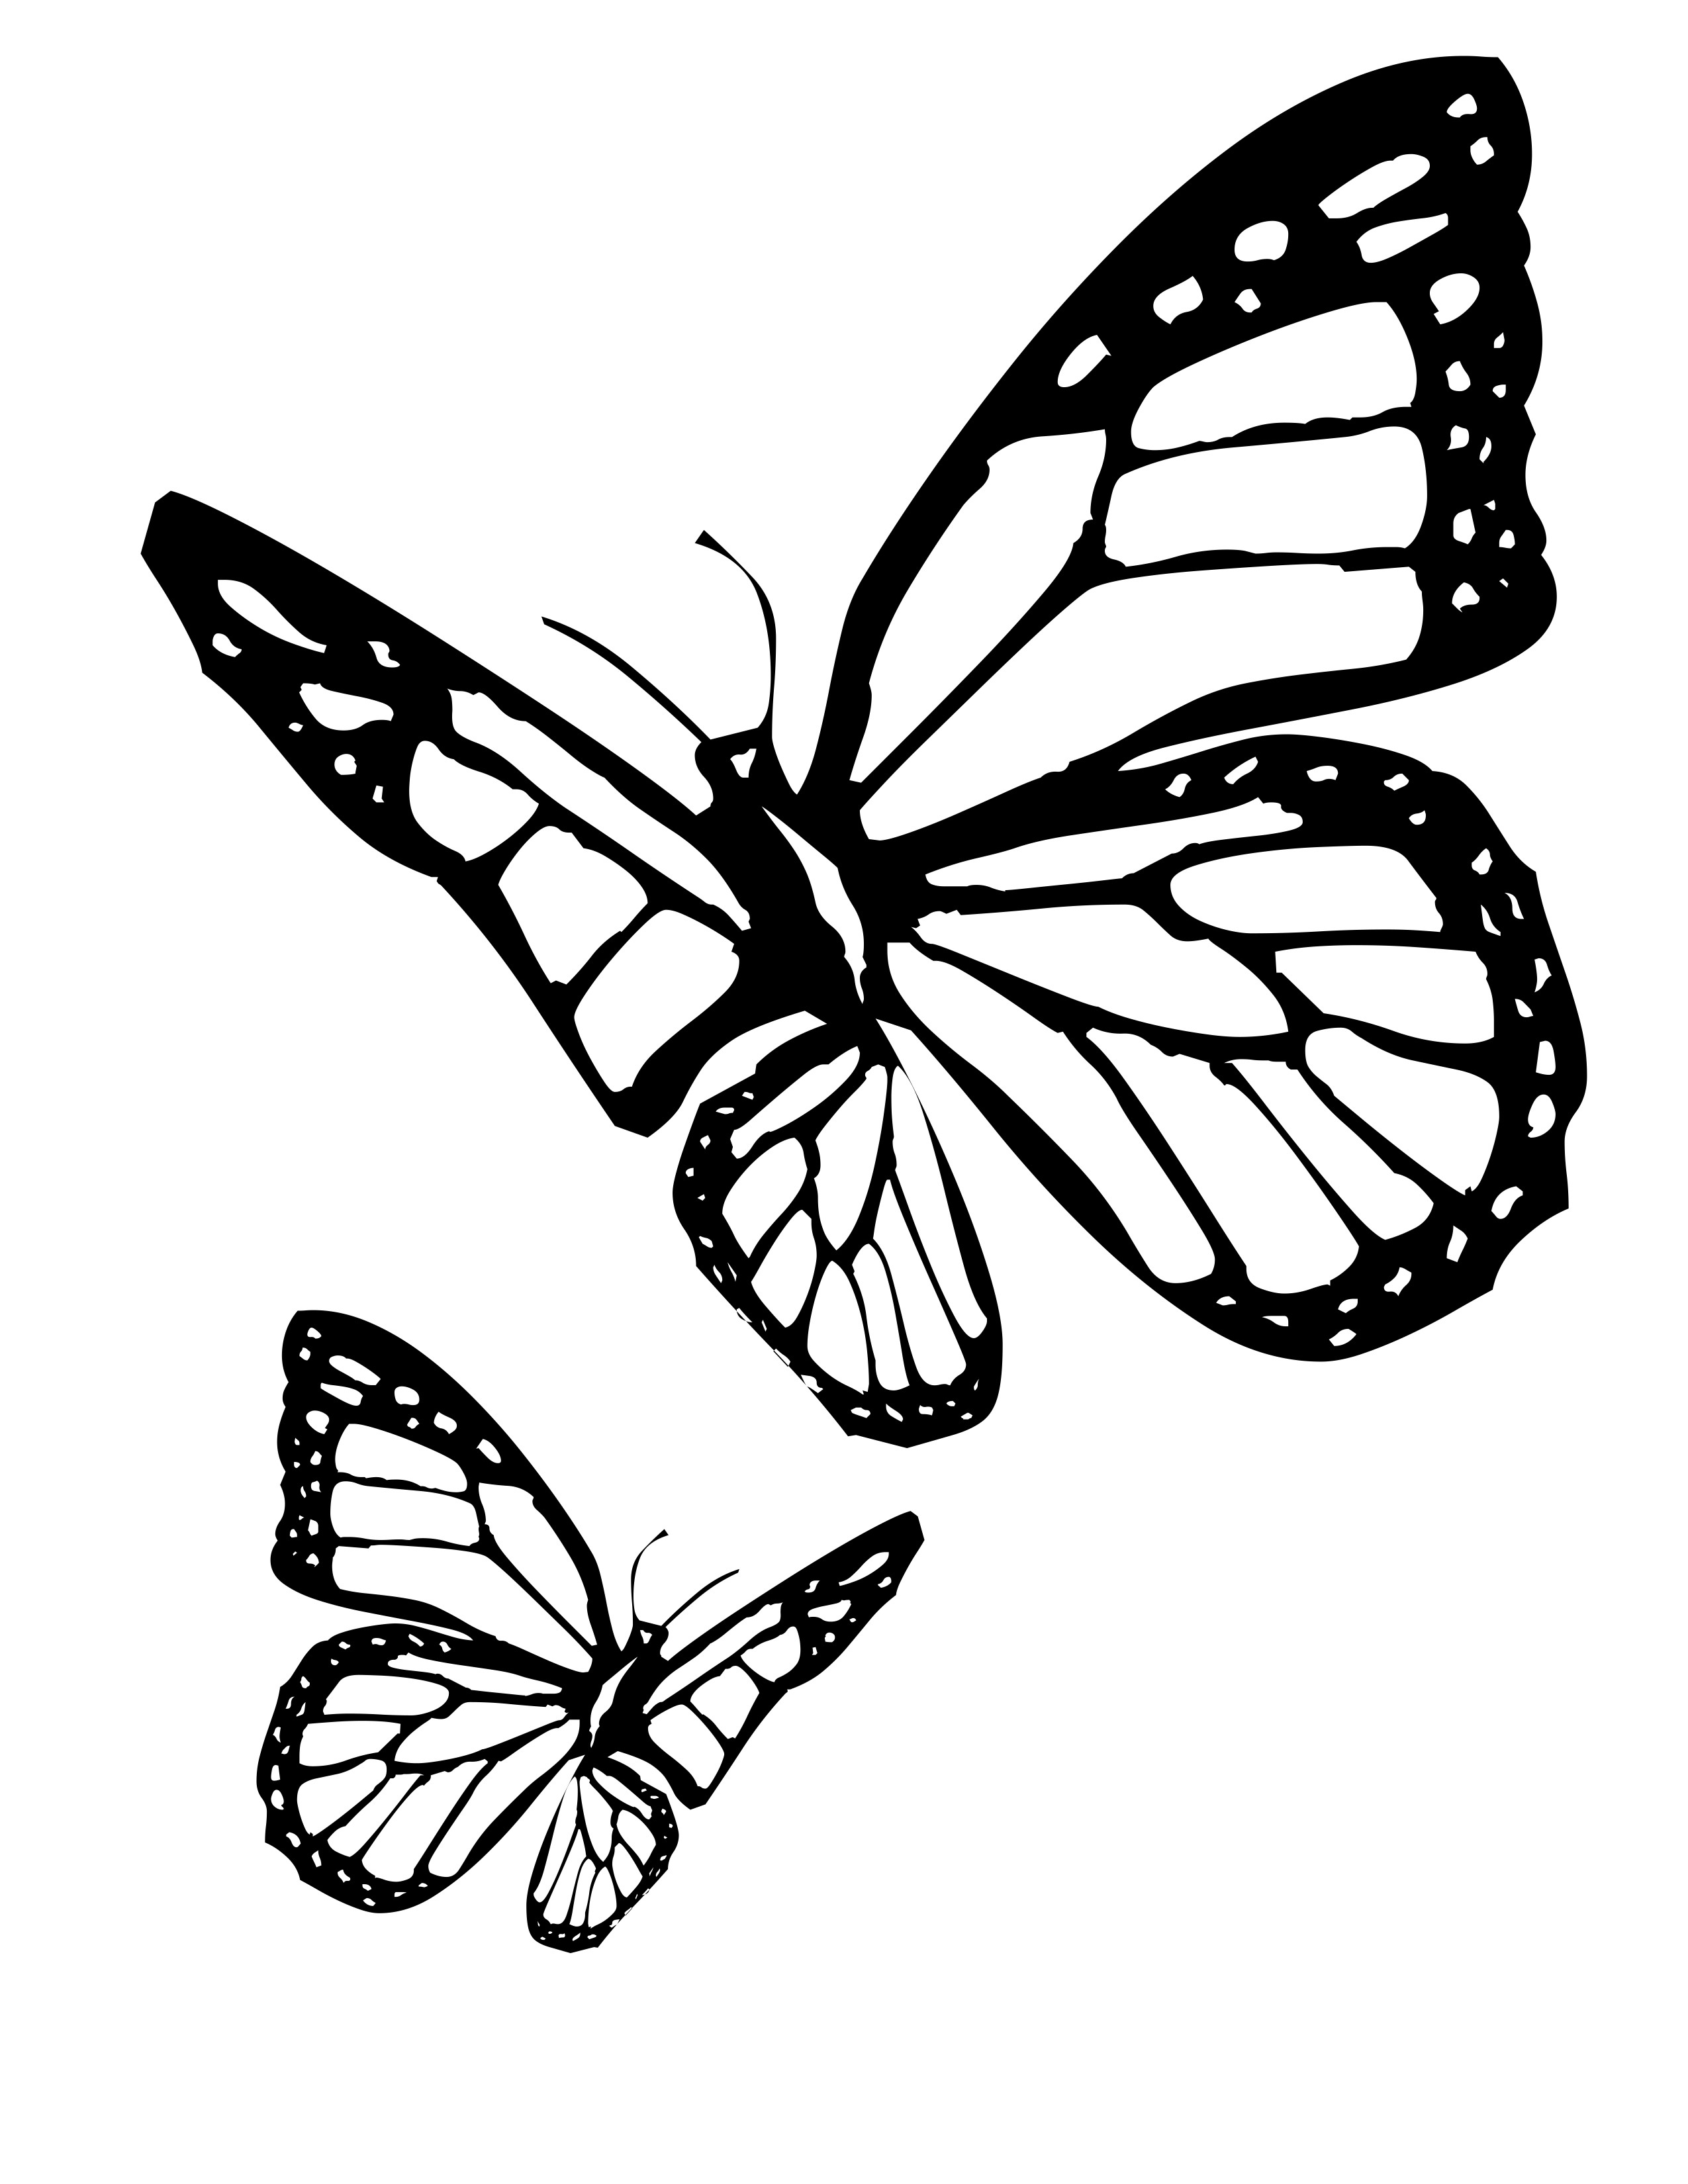 coloring images of butterfly butterfly coloring pages primarygamescom images of coloring butterfly